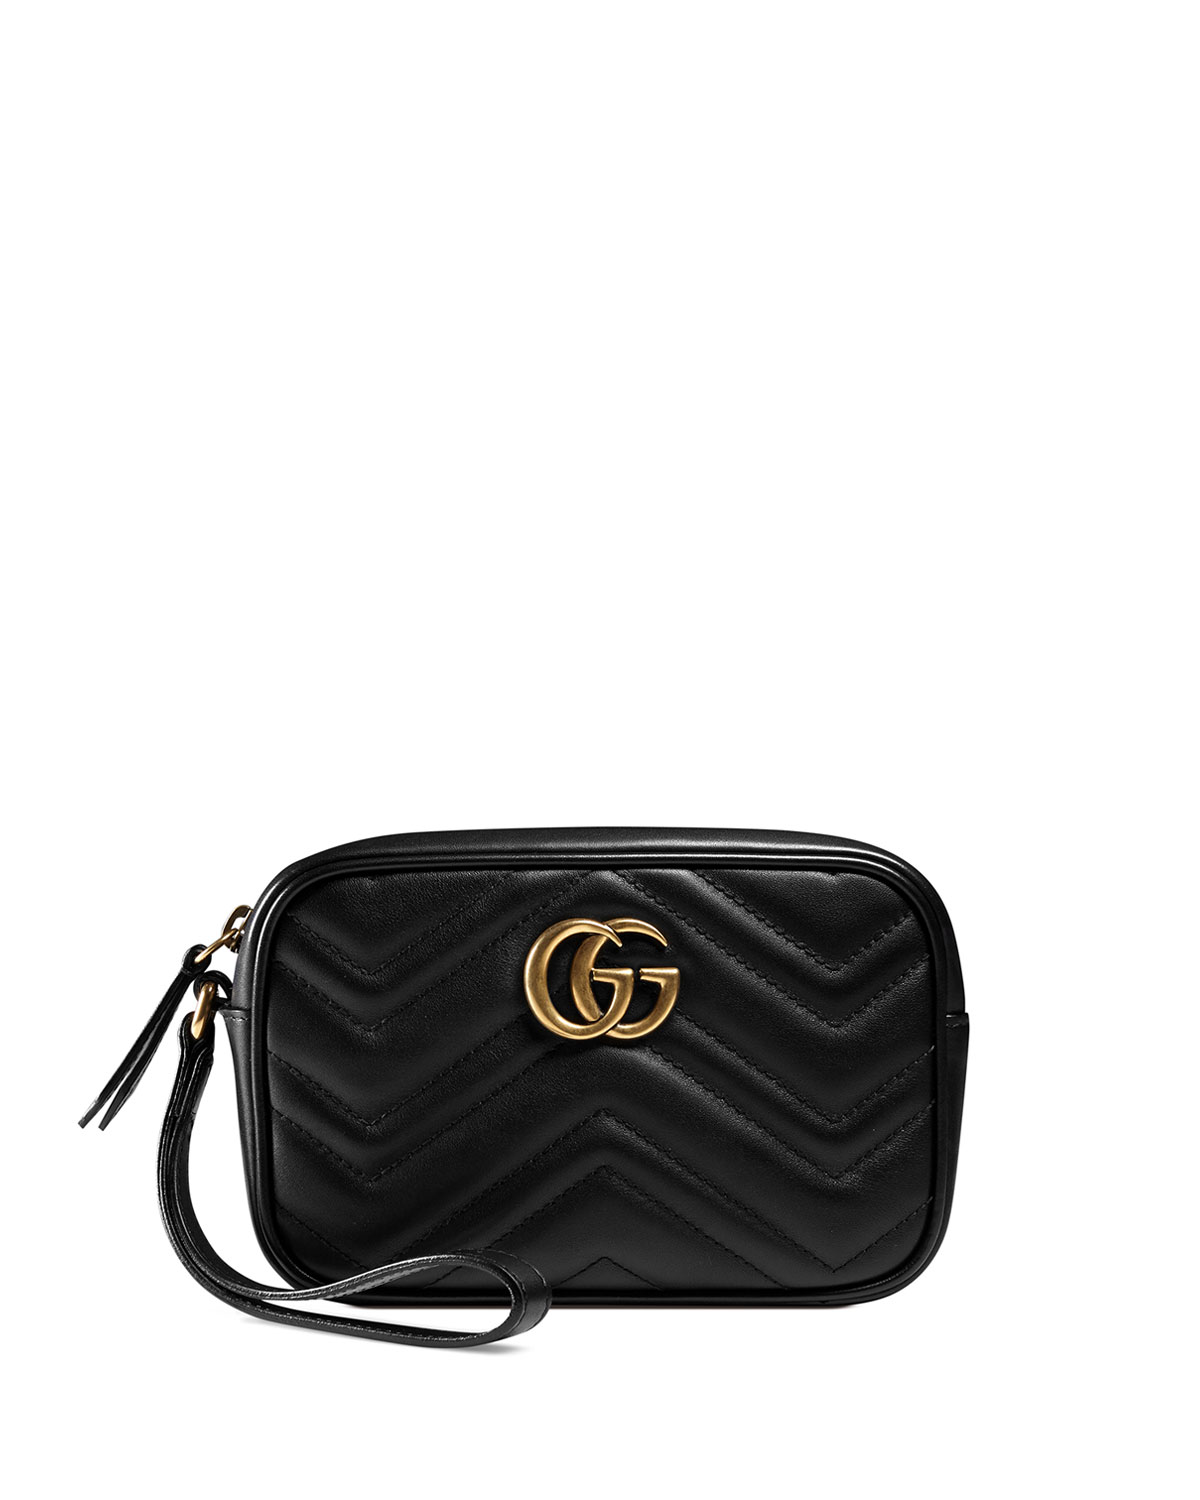 4bded8ea0cbb82 Gucci GG Marmont 2.0 Medium Quilted Wristlet, Black | Neiman Marcus